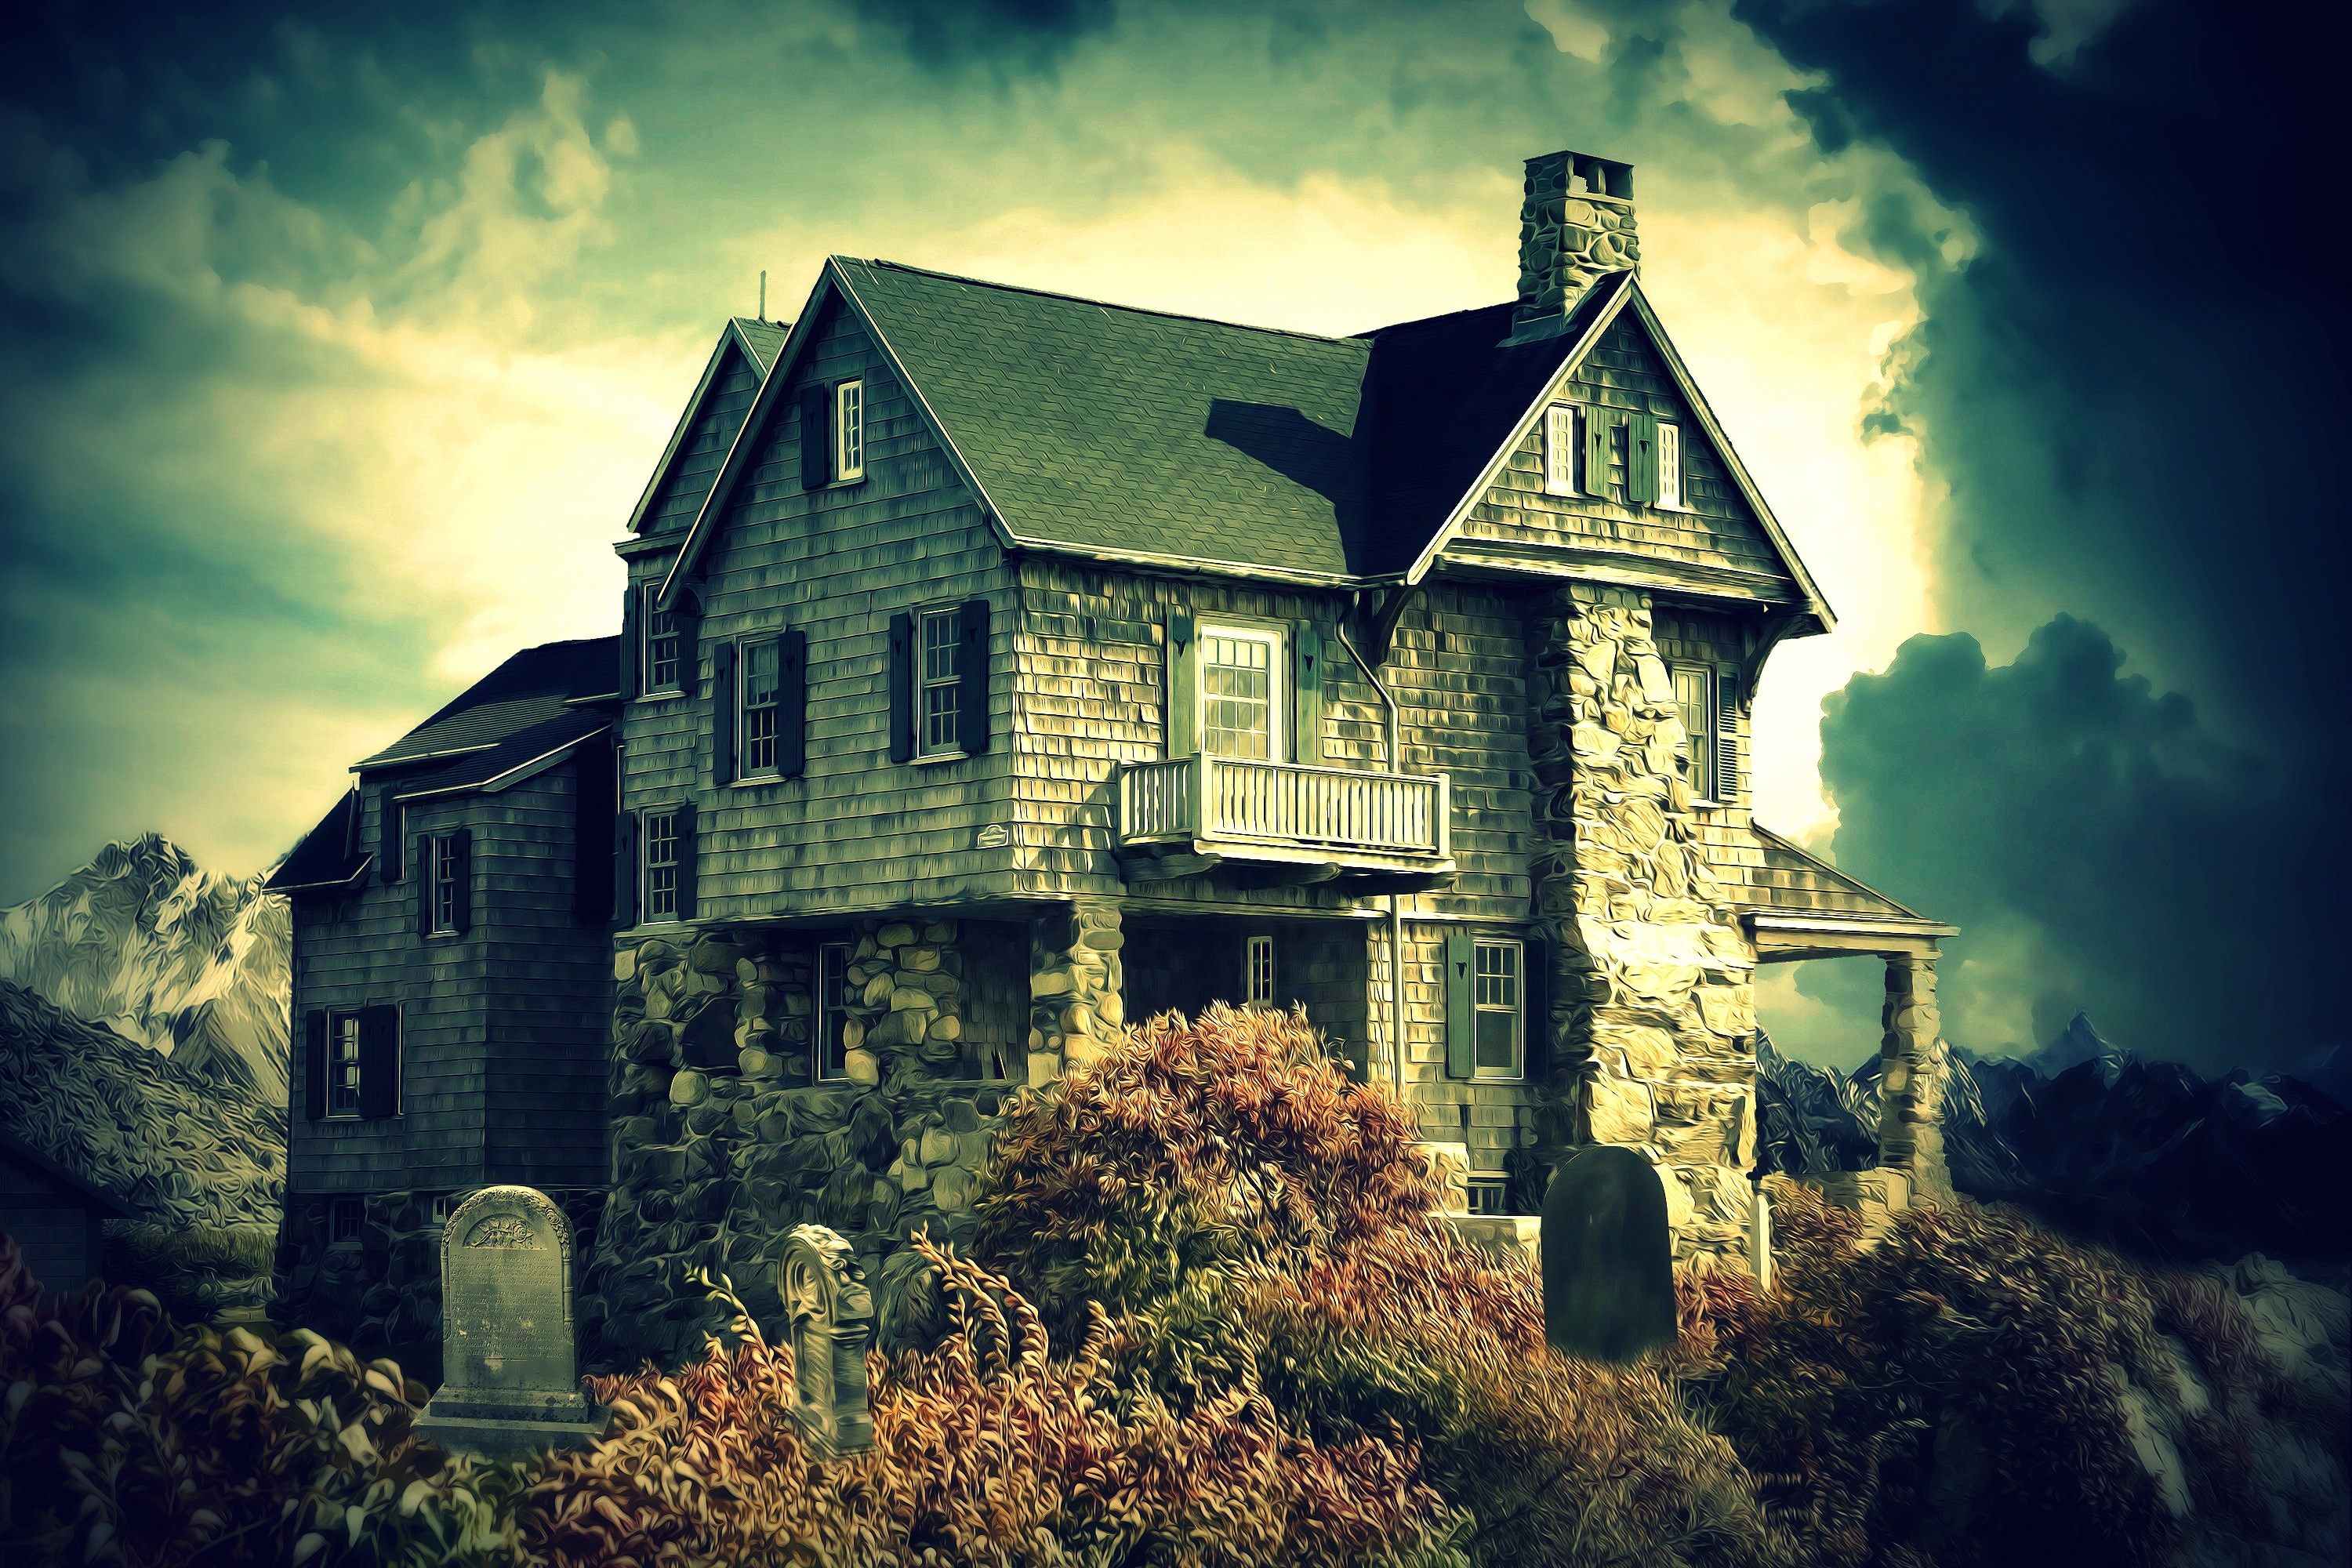 Haunted Houses: 7 Signs a House May Be Haunted